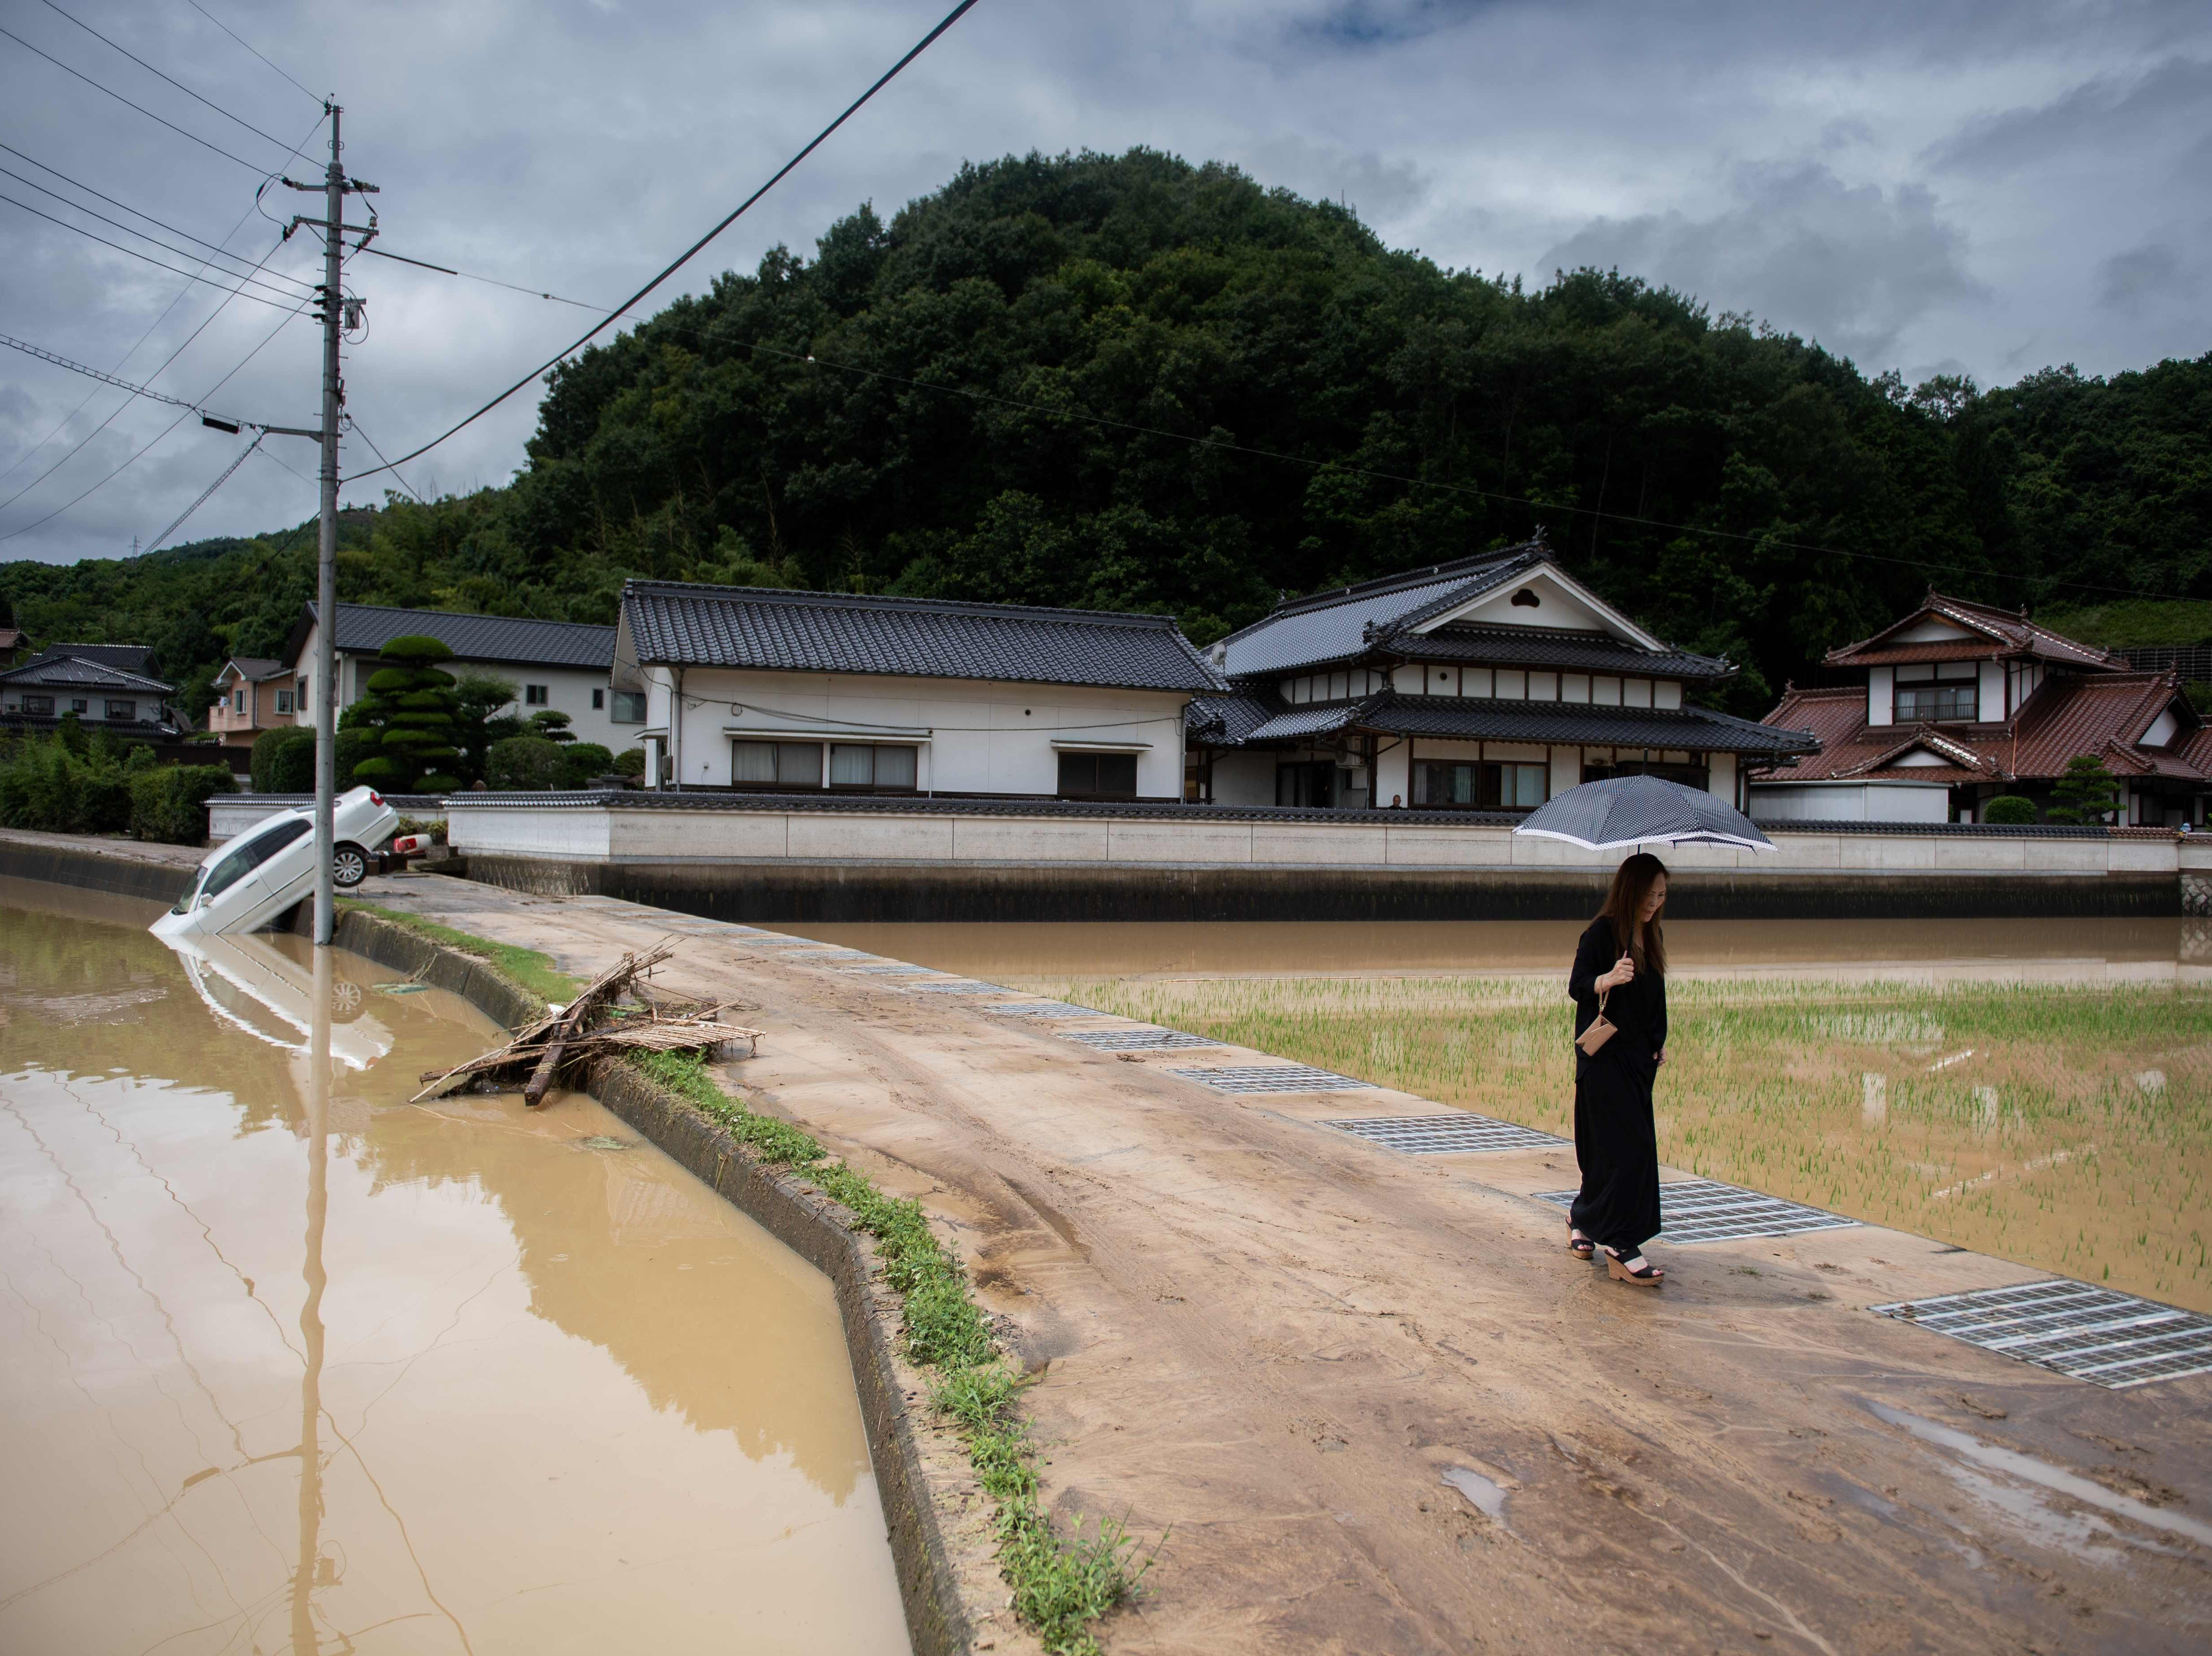 """July 8, 2018: A woman walks past flooded rice fields in Mihara. Japan's Prime Minister Shinzo Abe warned of a """"race against time"""" to rescue flood victims as authorities issued new alerts over record rains that have killed at least 48 people."""